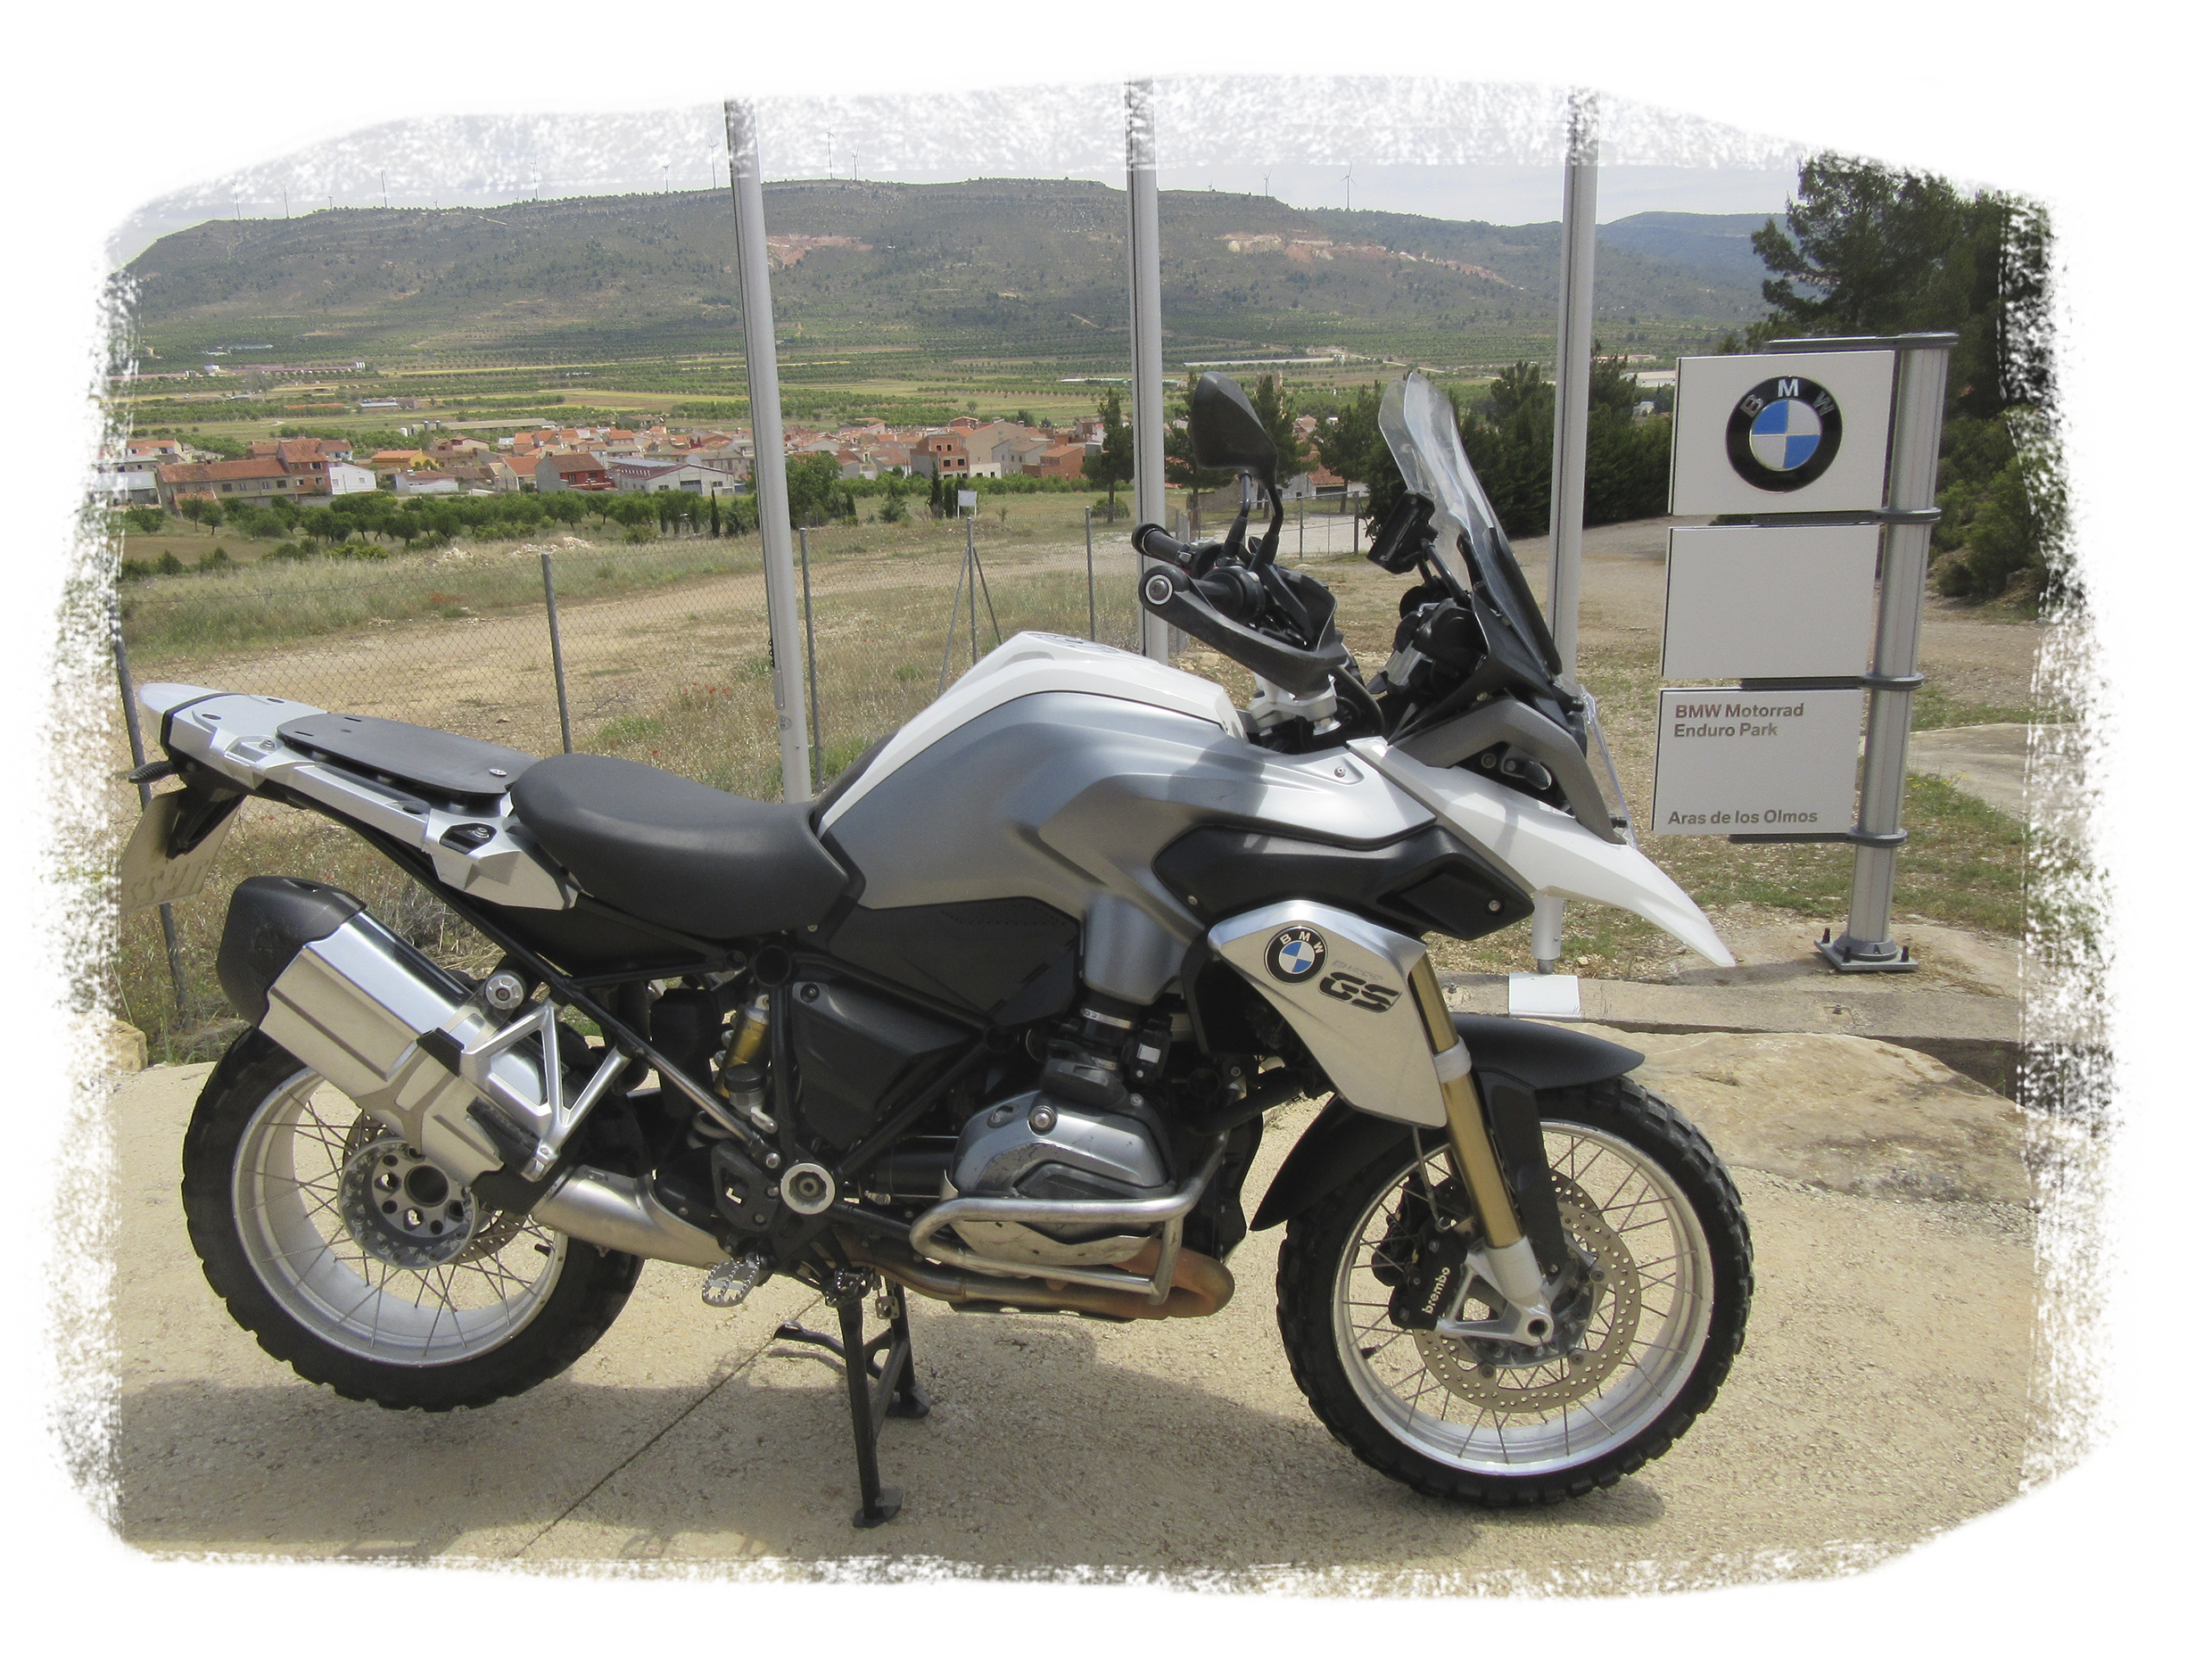 BMW R-1200GS (off-road)